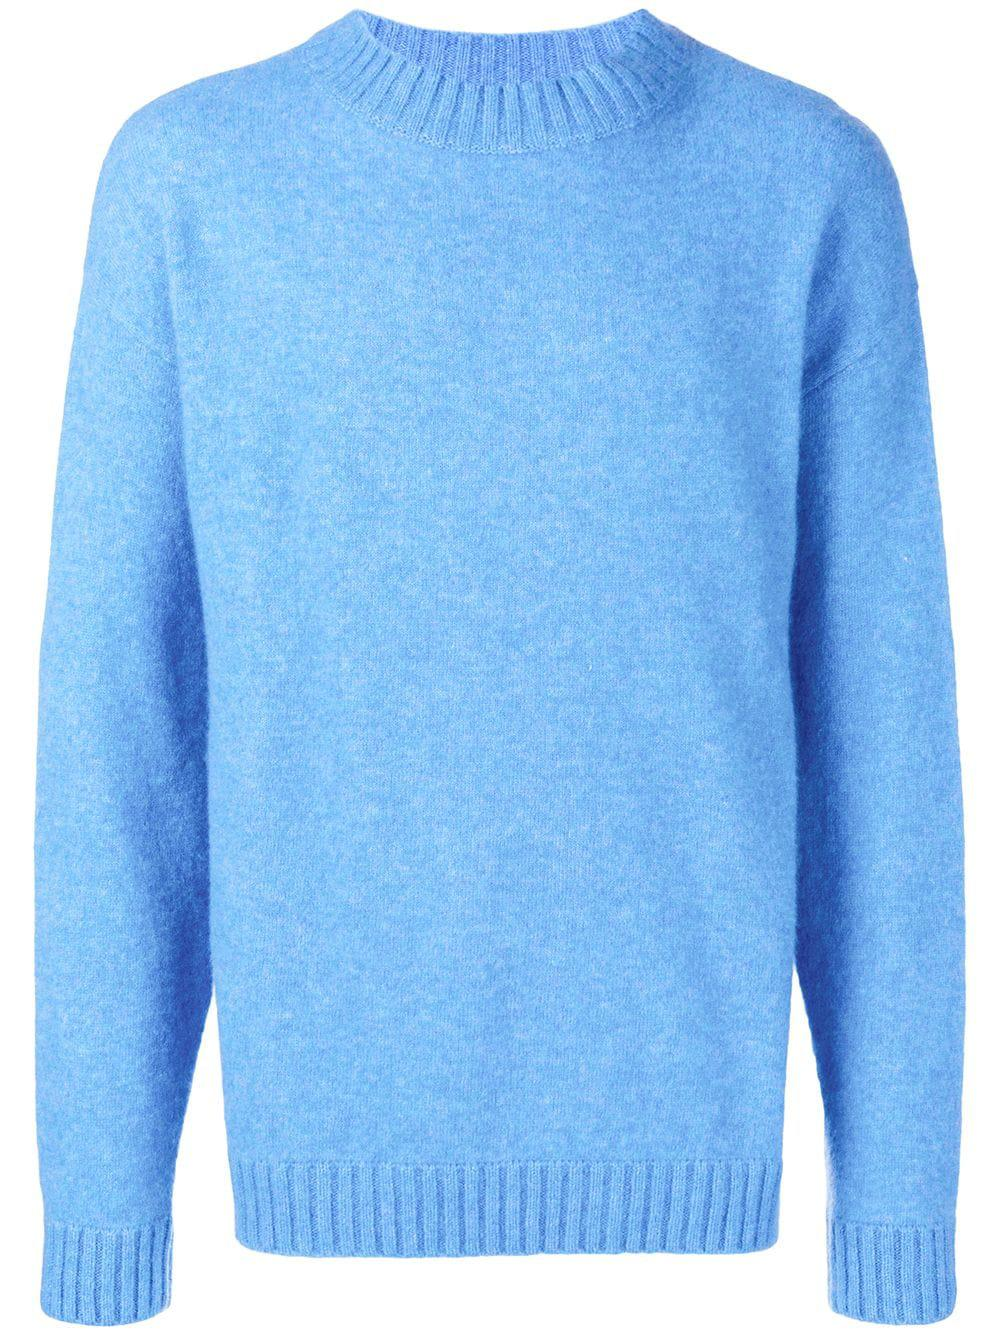 Laneus Crew Knitted Jumper - Blue